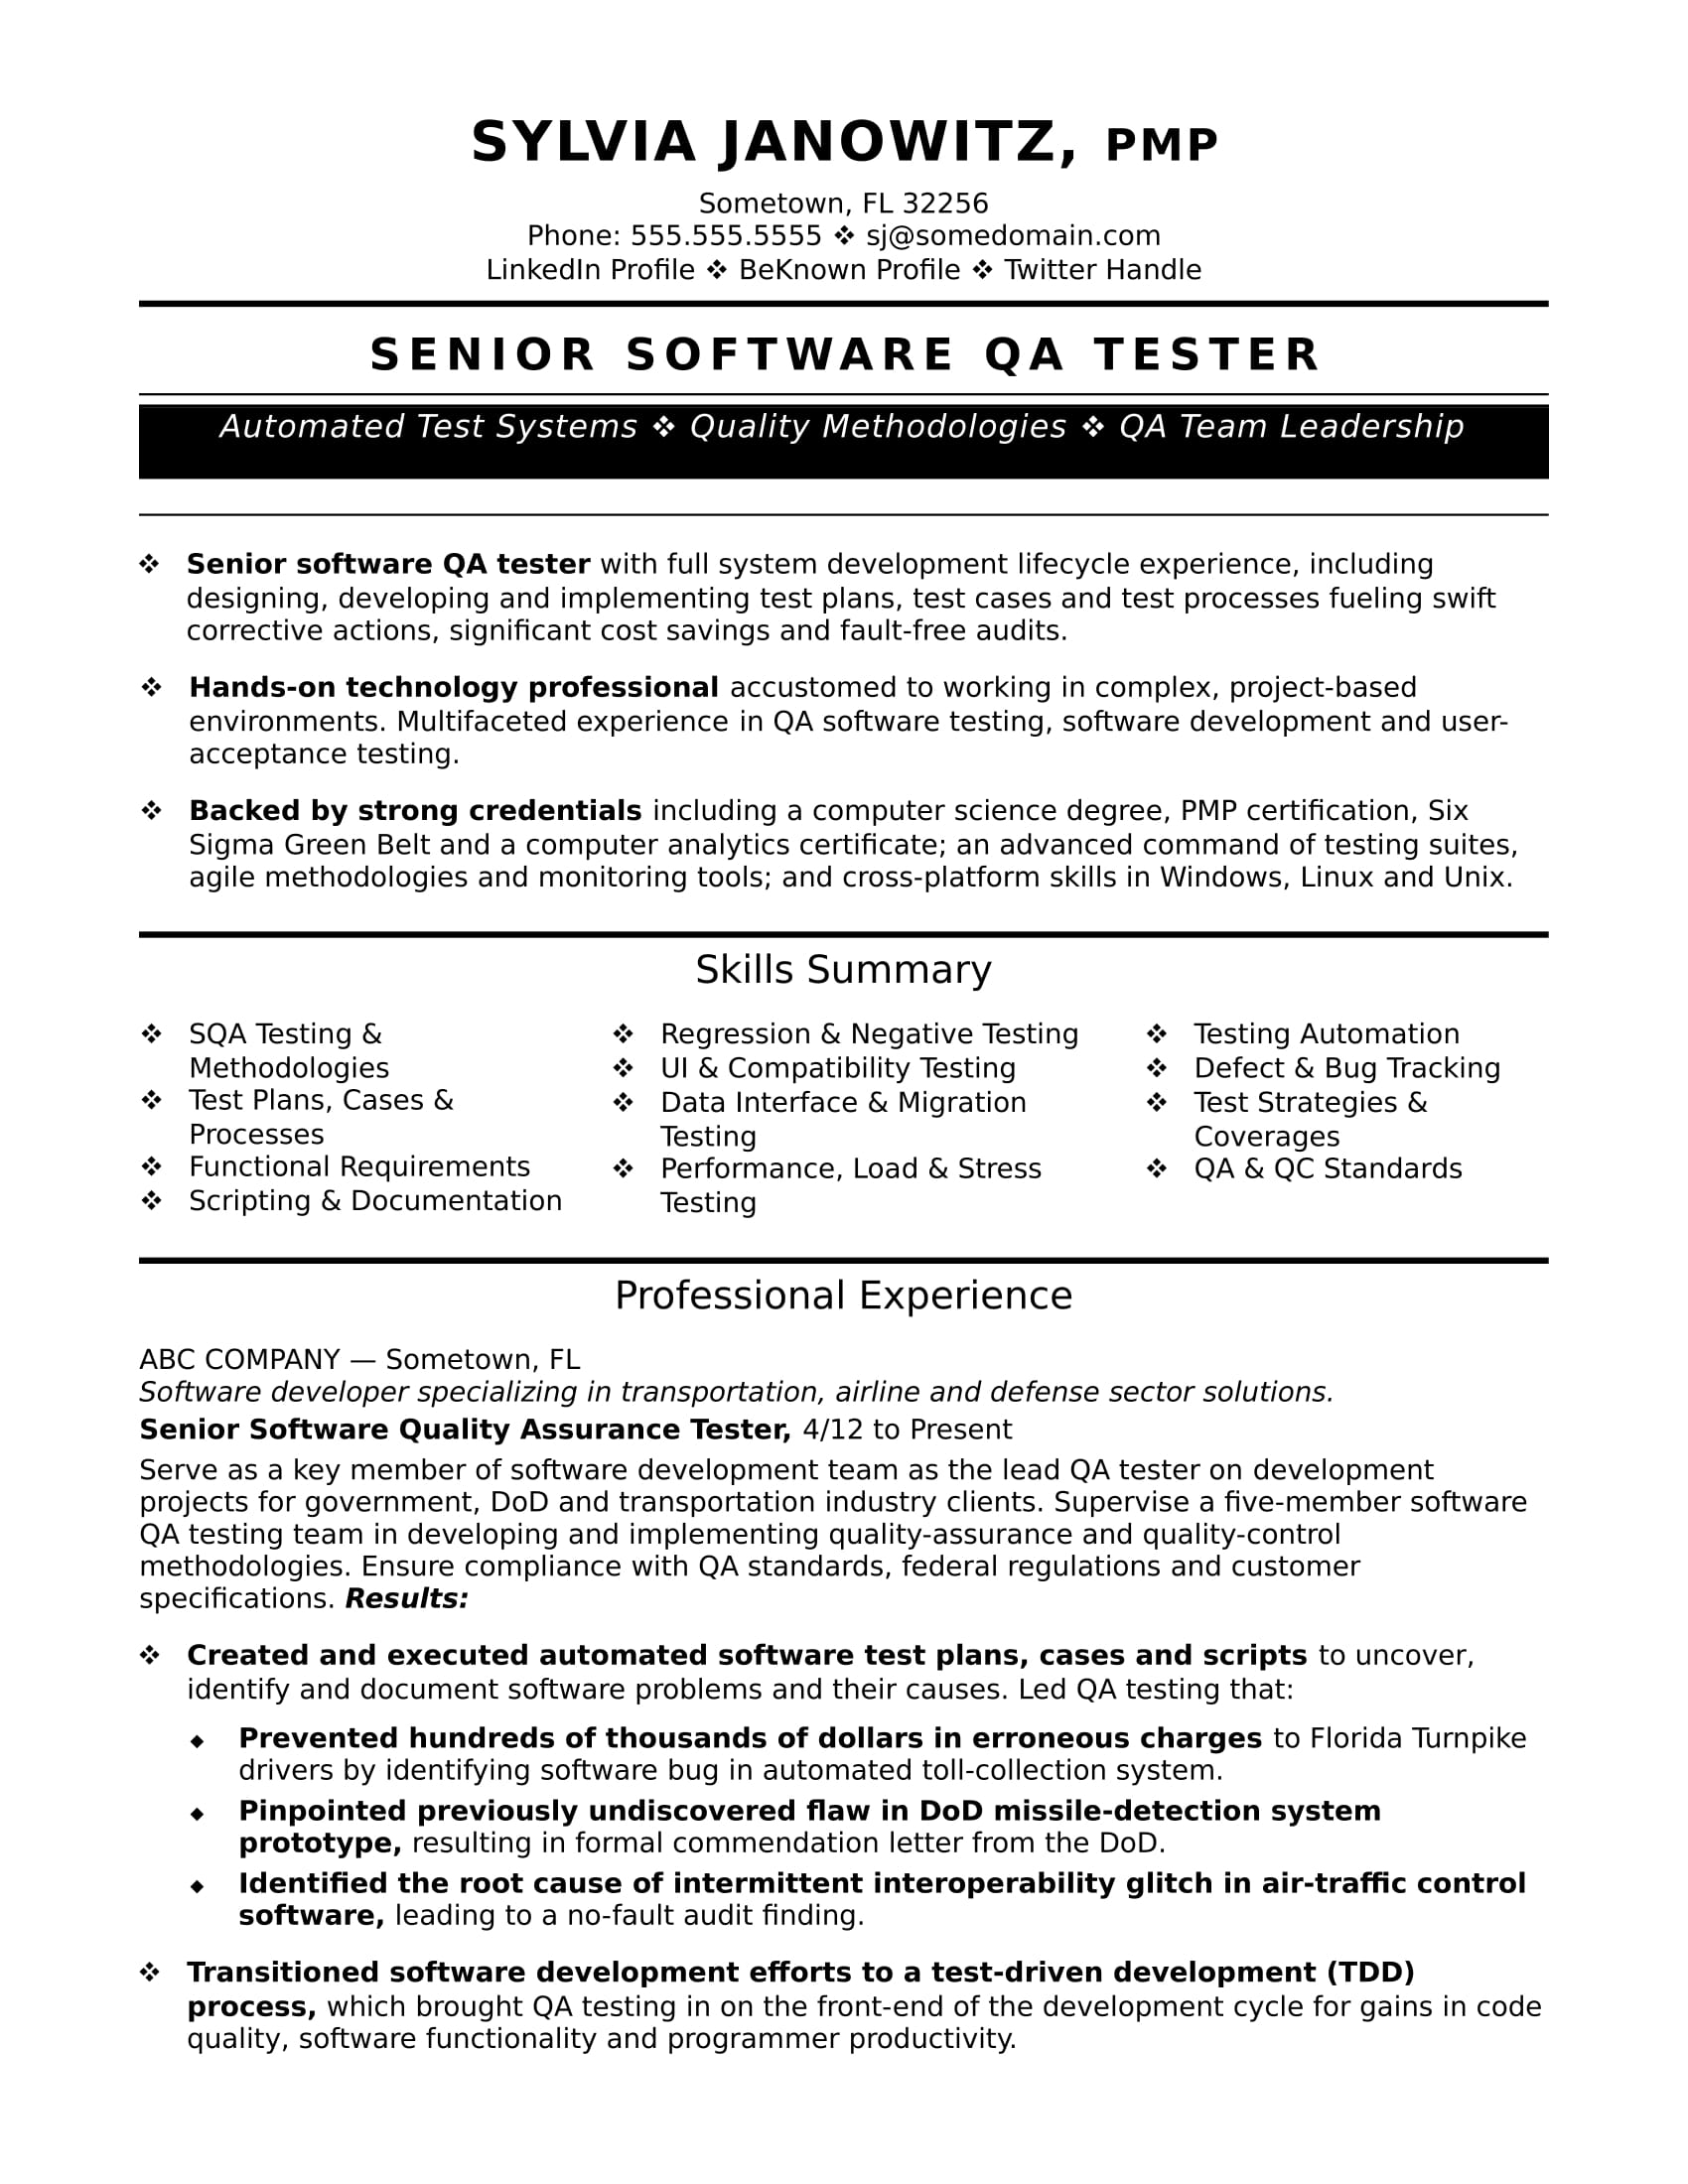 experienced qa software tester resume sample - Software Tester Resume